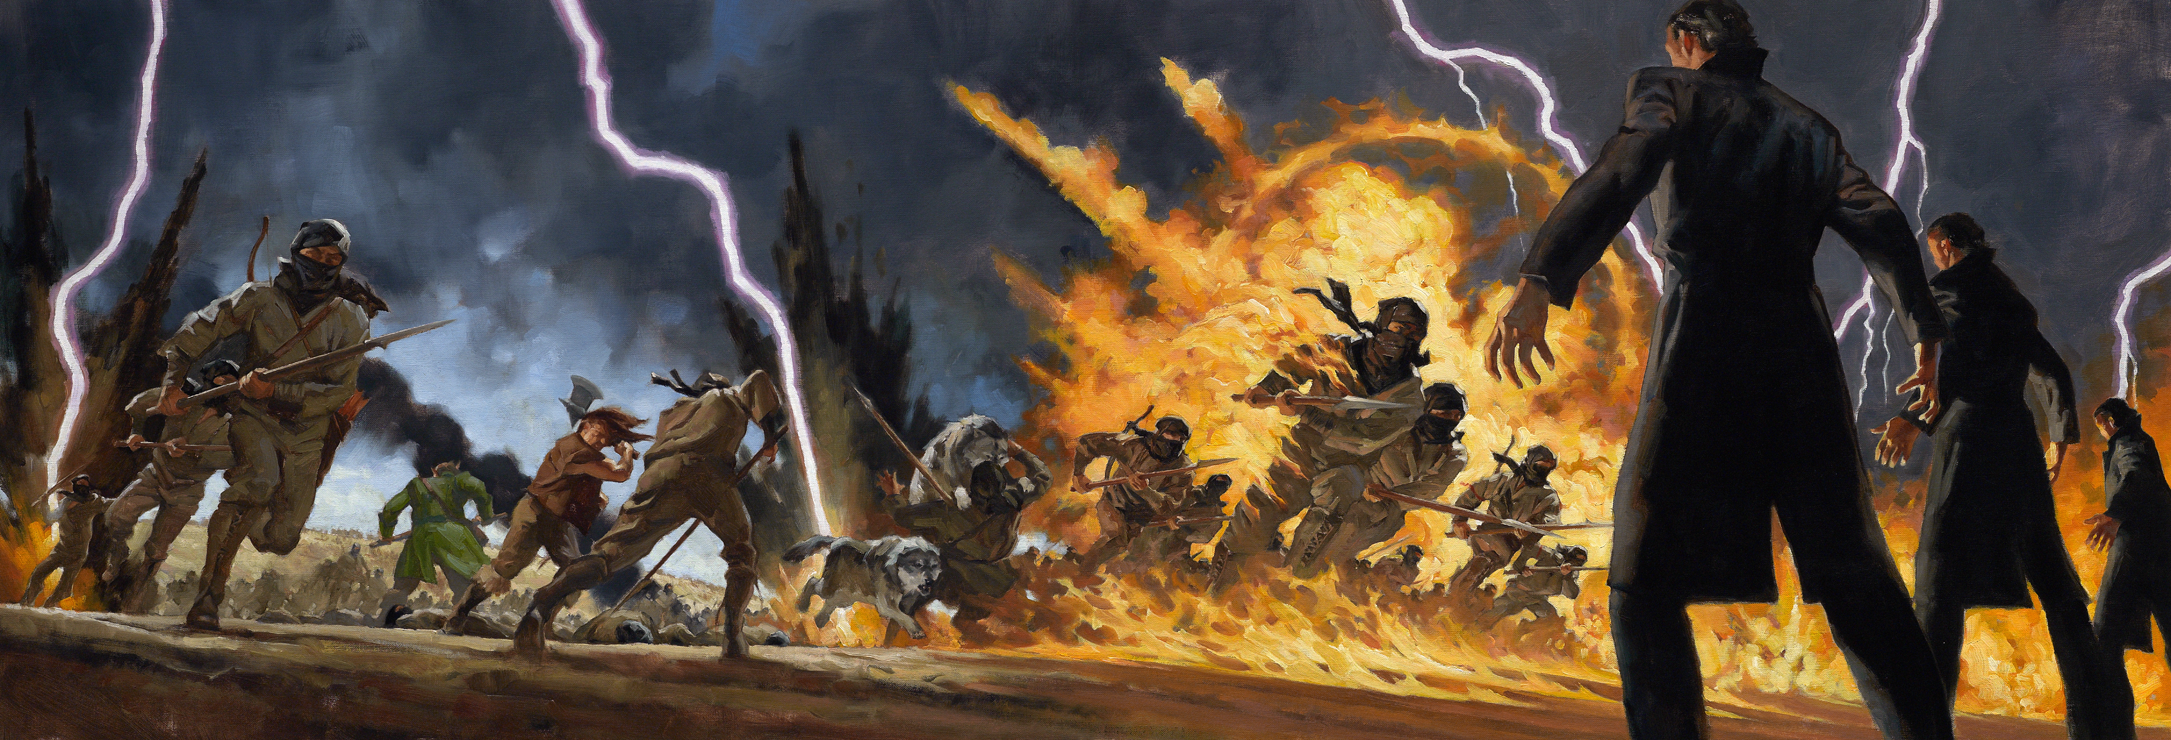 Lord of Chaos panoramic image by Greg Manchess